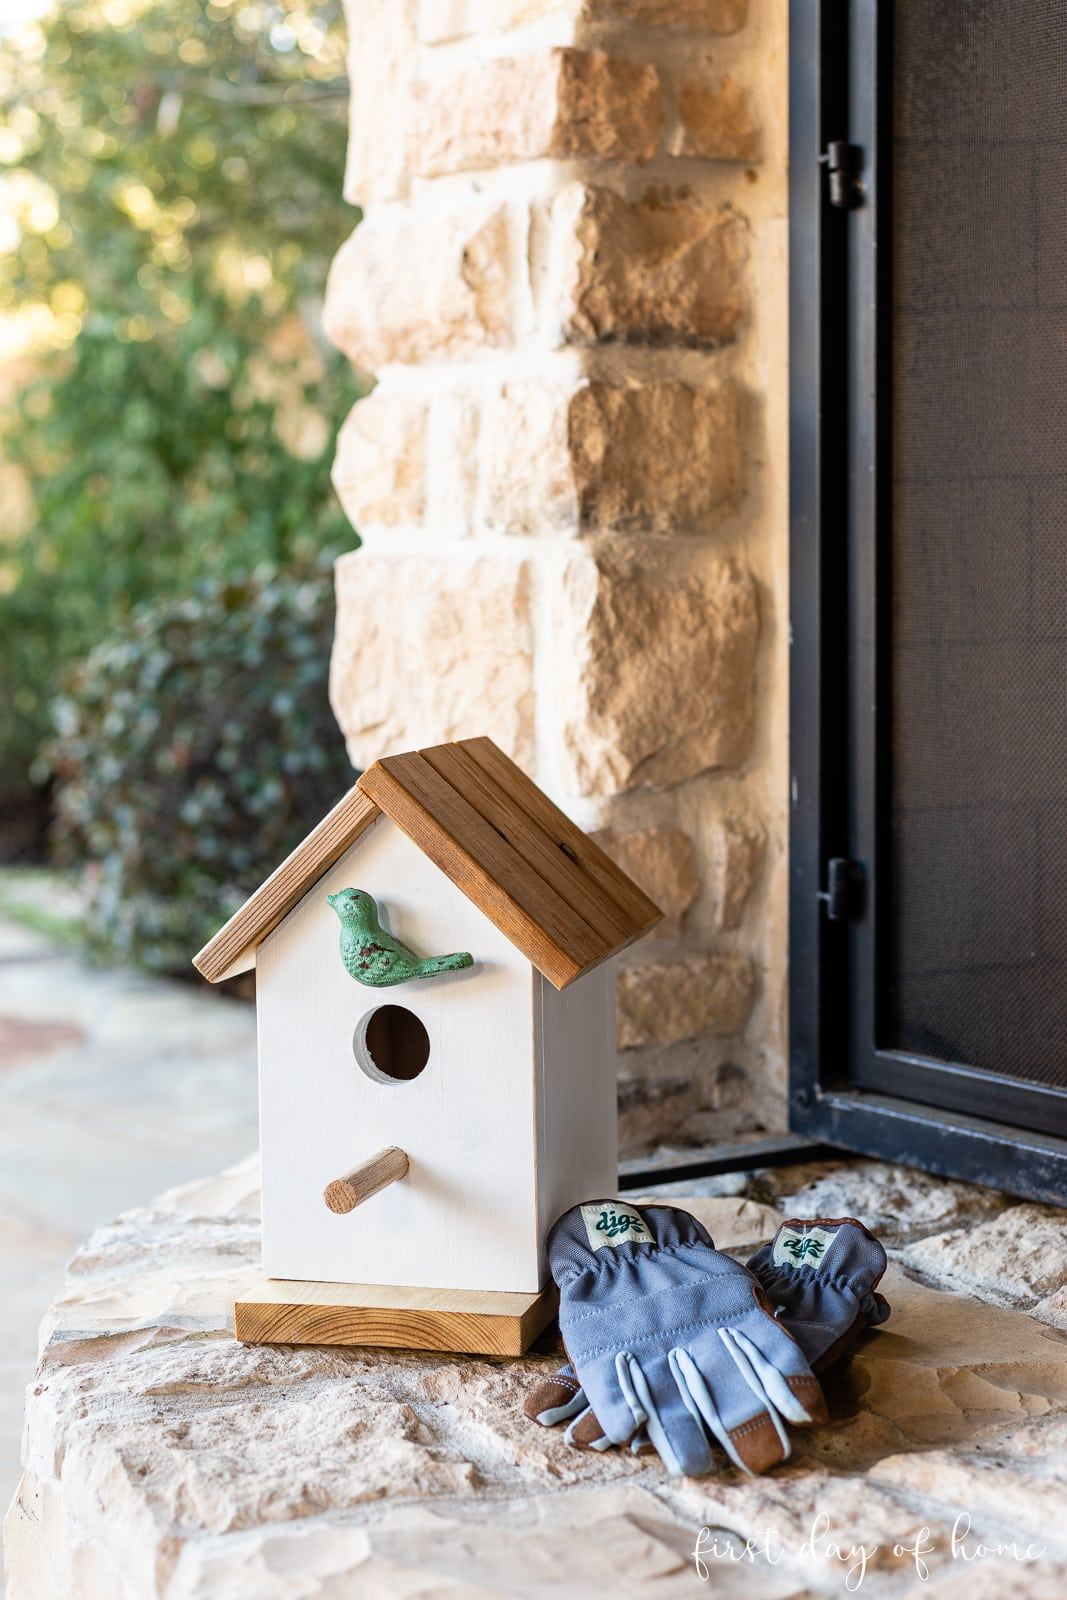 DIY birdhouse sitting on outdoor hearth with gardening gloves